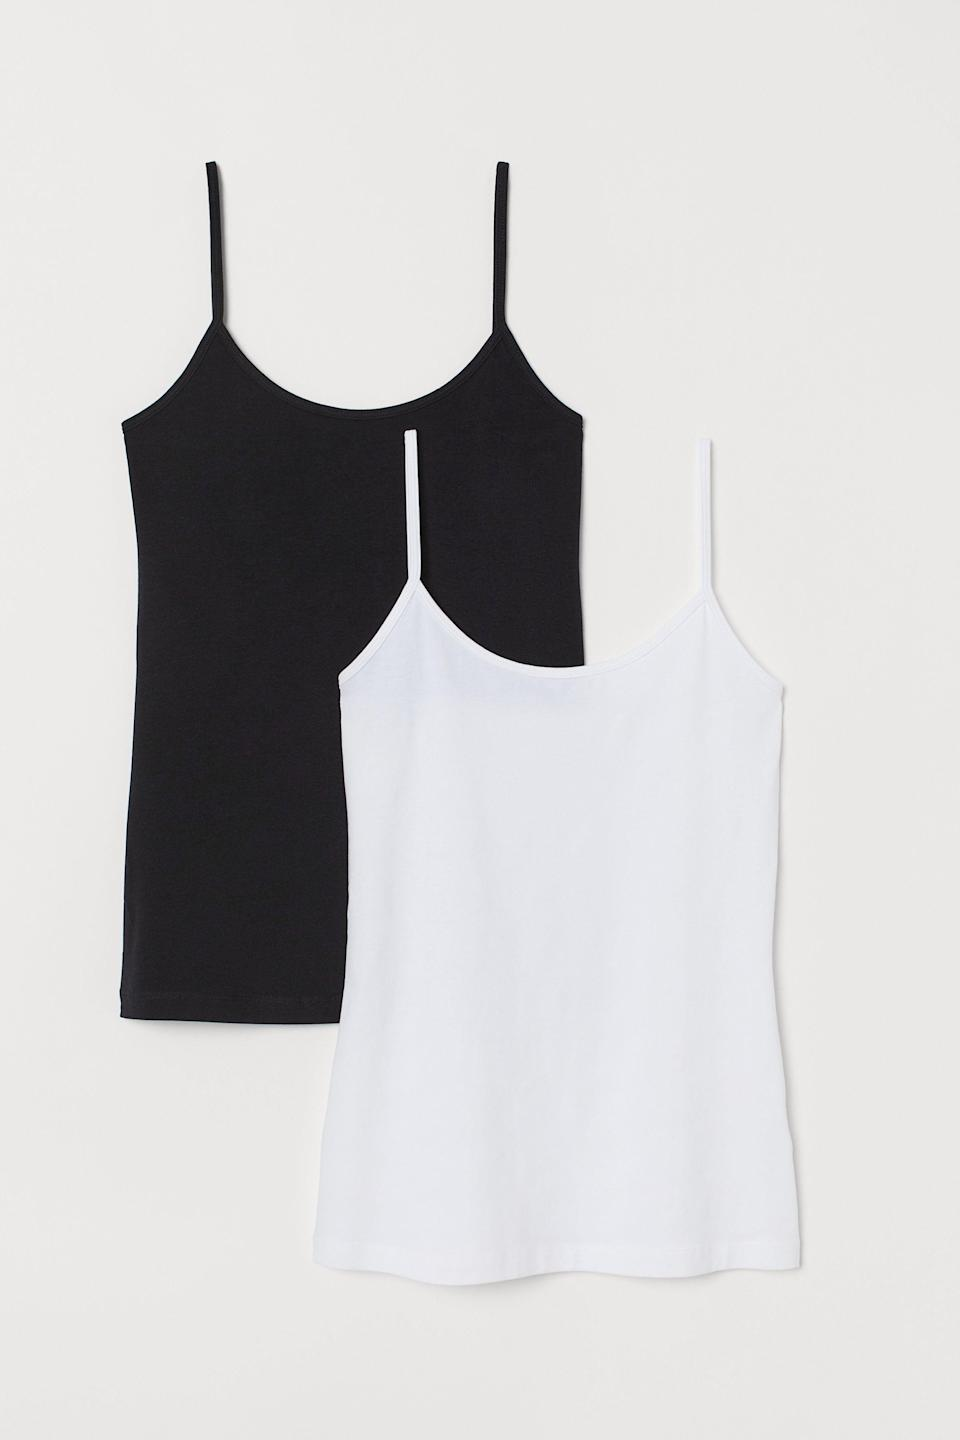 """<br><br><strong>H&M</strong> 2-pack Jersey Tank Tops, $, available at <a href=""""https://go.skimresources.com/?id=30283X879131&url=https%3A%2F%2Fwww2.hm.com%2Fen_us%2Fproductpage.0736870005.html"""" rel=""""nofollow noopener"""" target=""""_blank"""" data-ylk=""""slk:H&M"""" class=""""link rapid-noclick-resp"""">H&M</a>"""